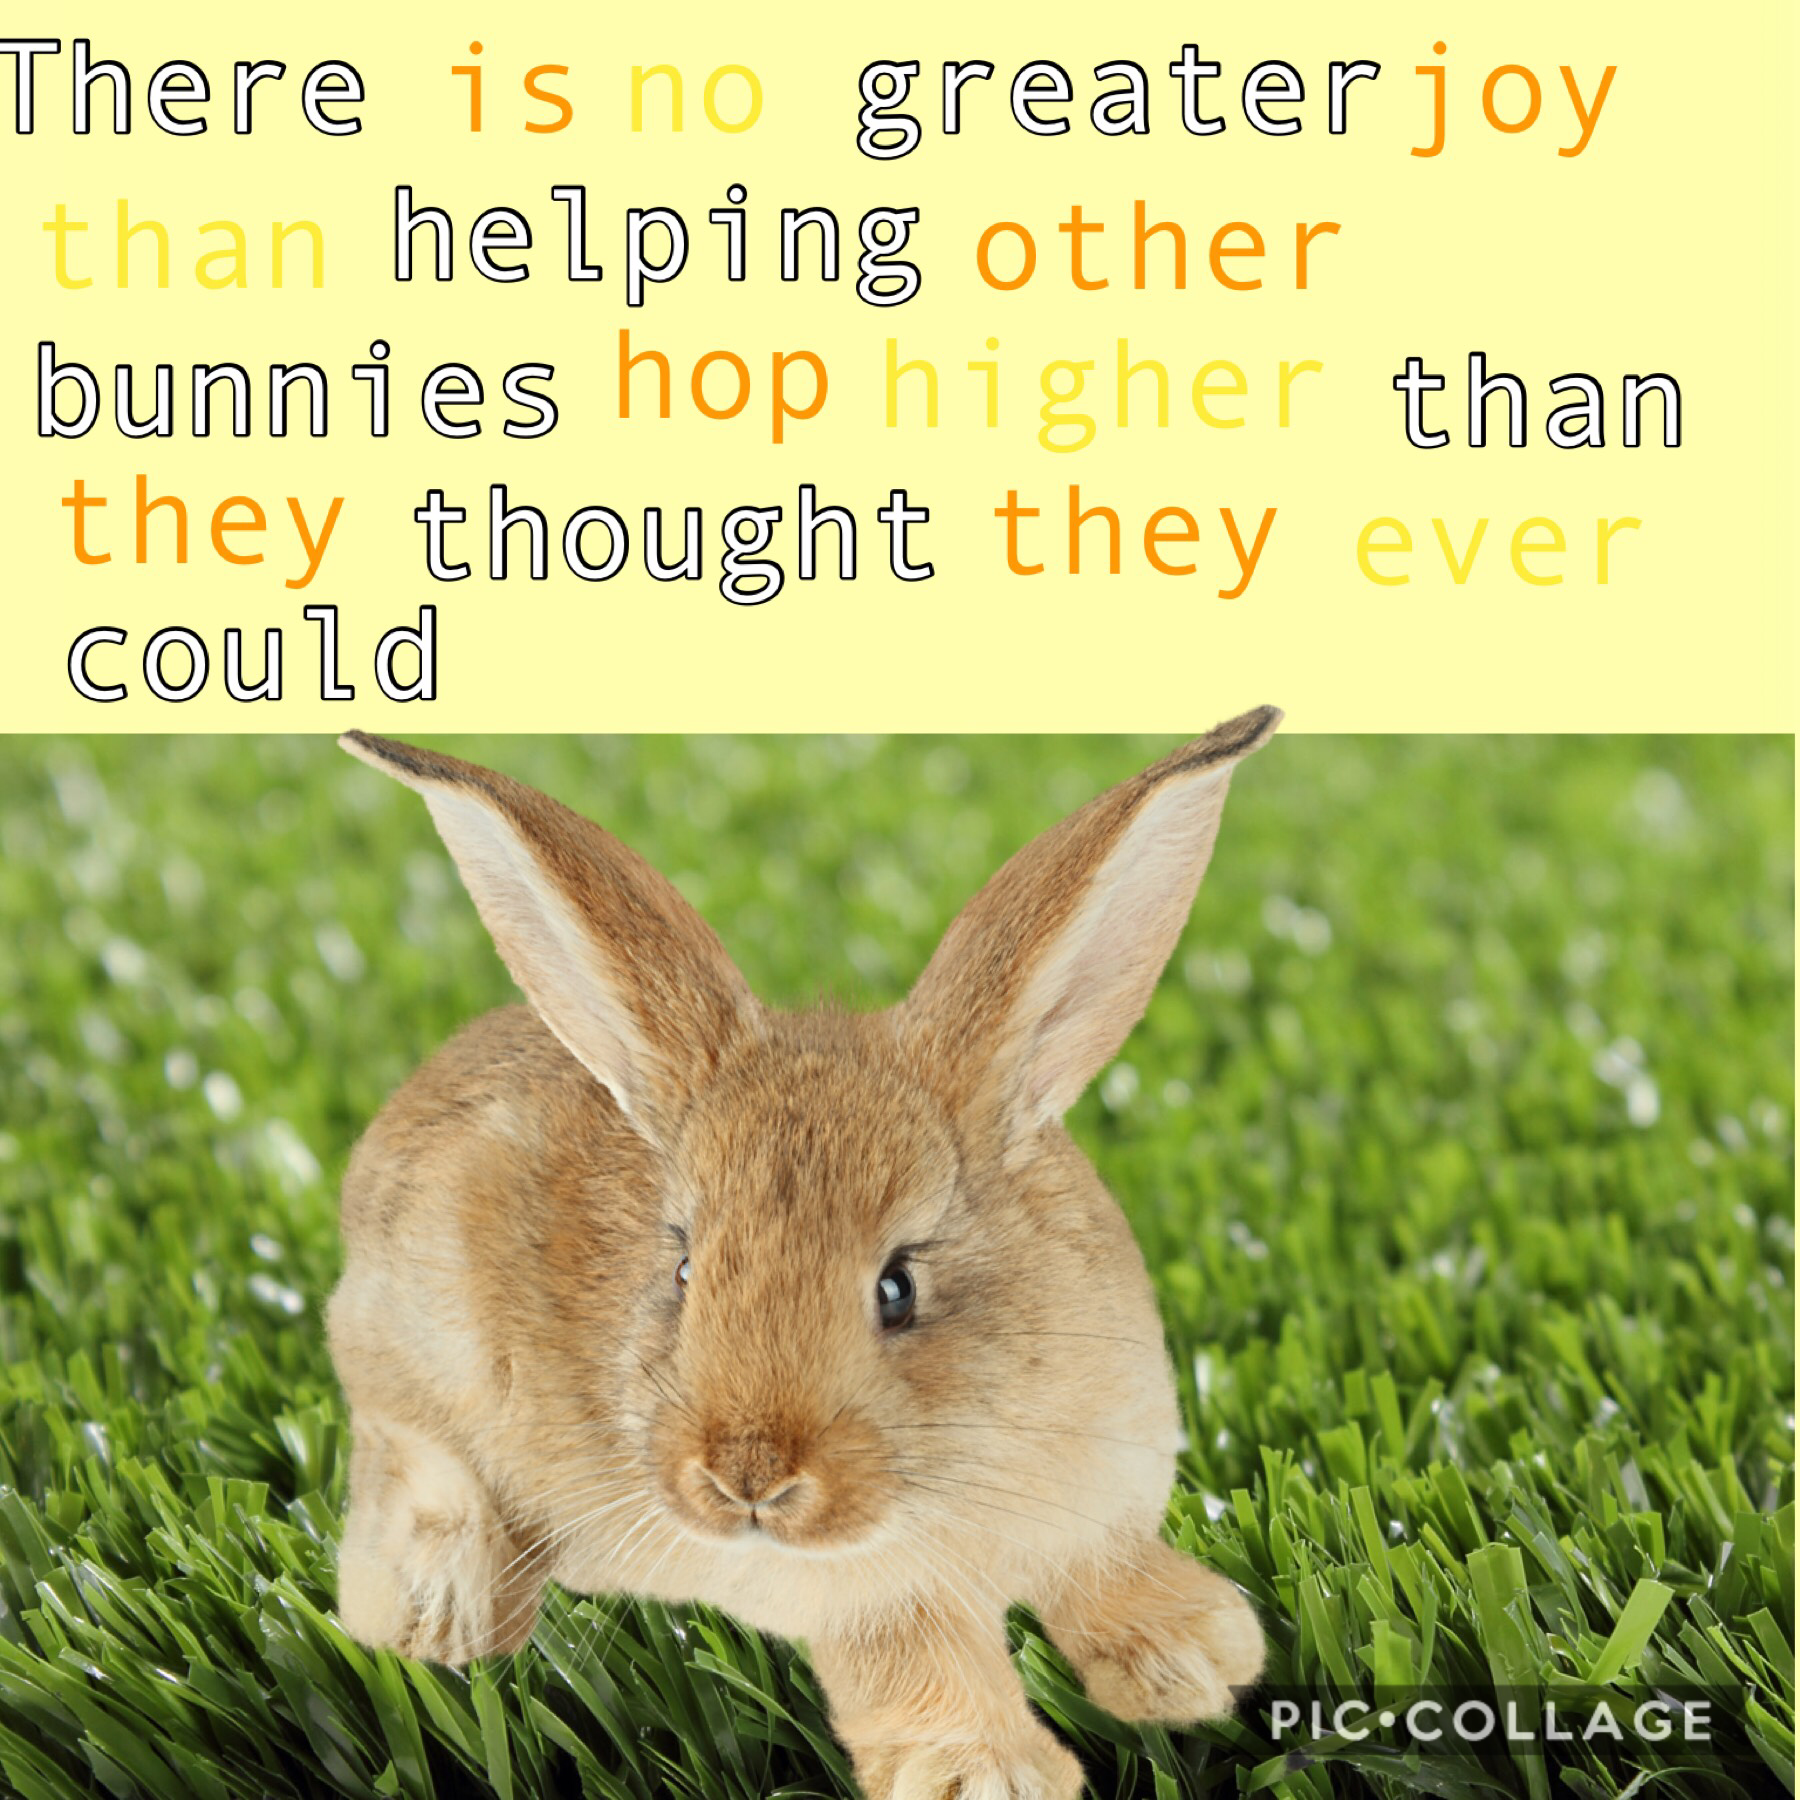 There is no greater joy than helping other bunnies hop higher than they thought they ever could!🐰